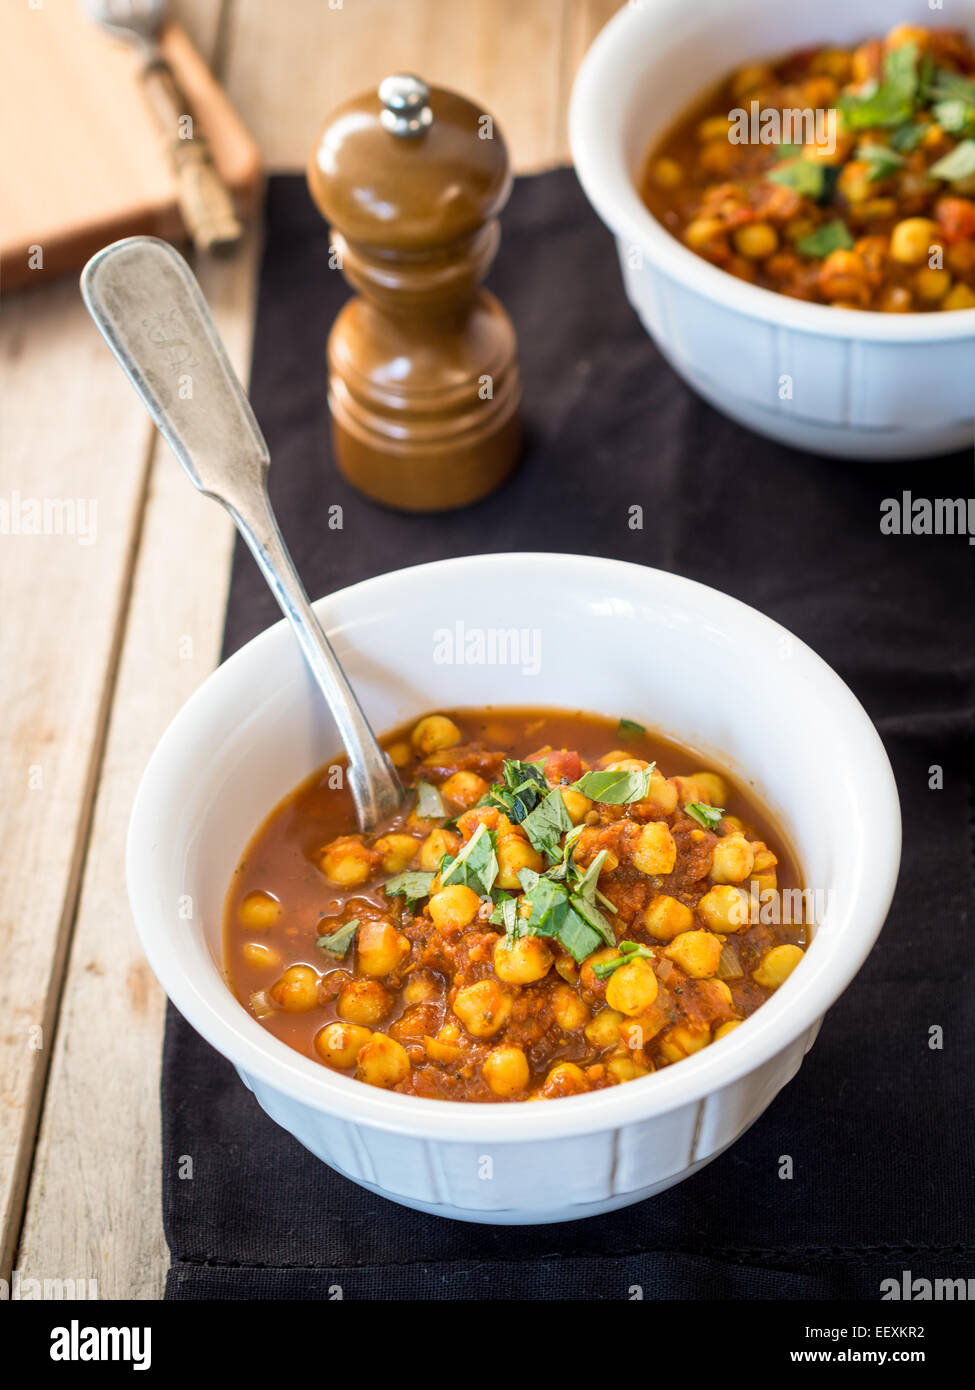 Vegan chickpea curry. - Stock Image